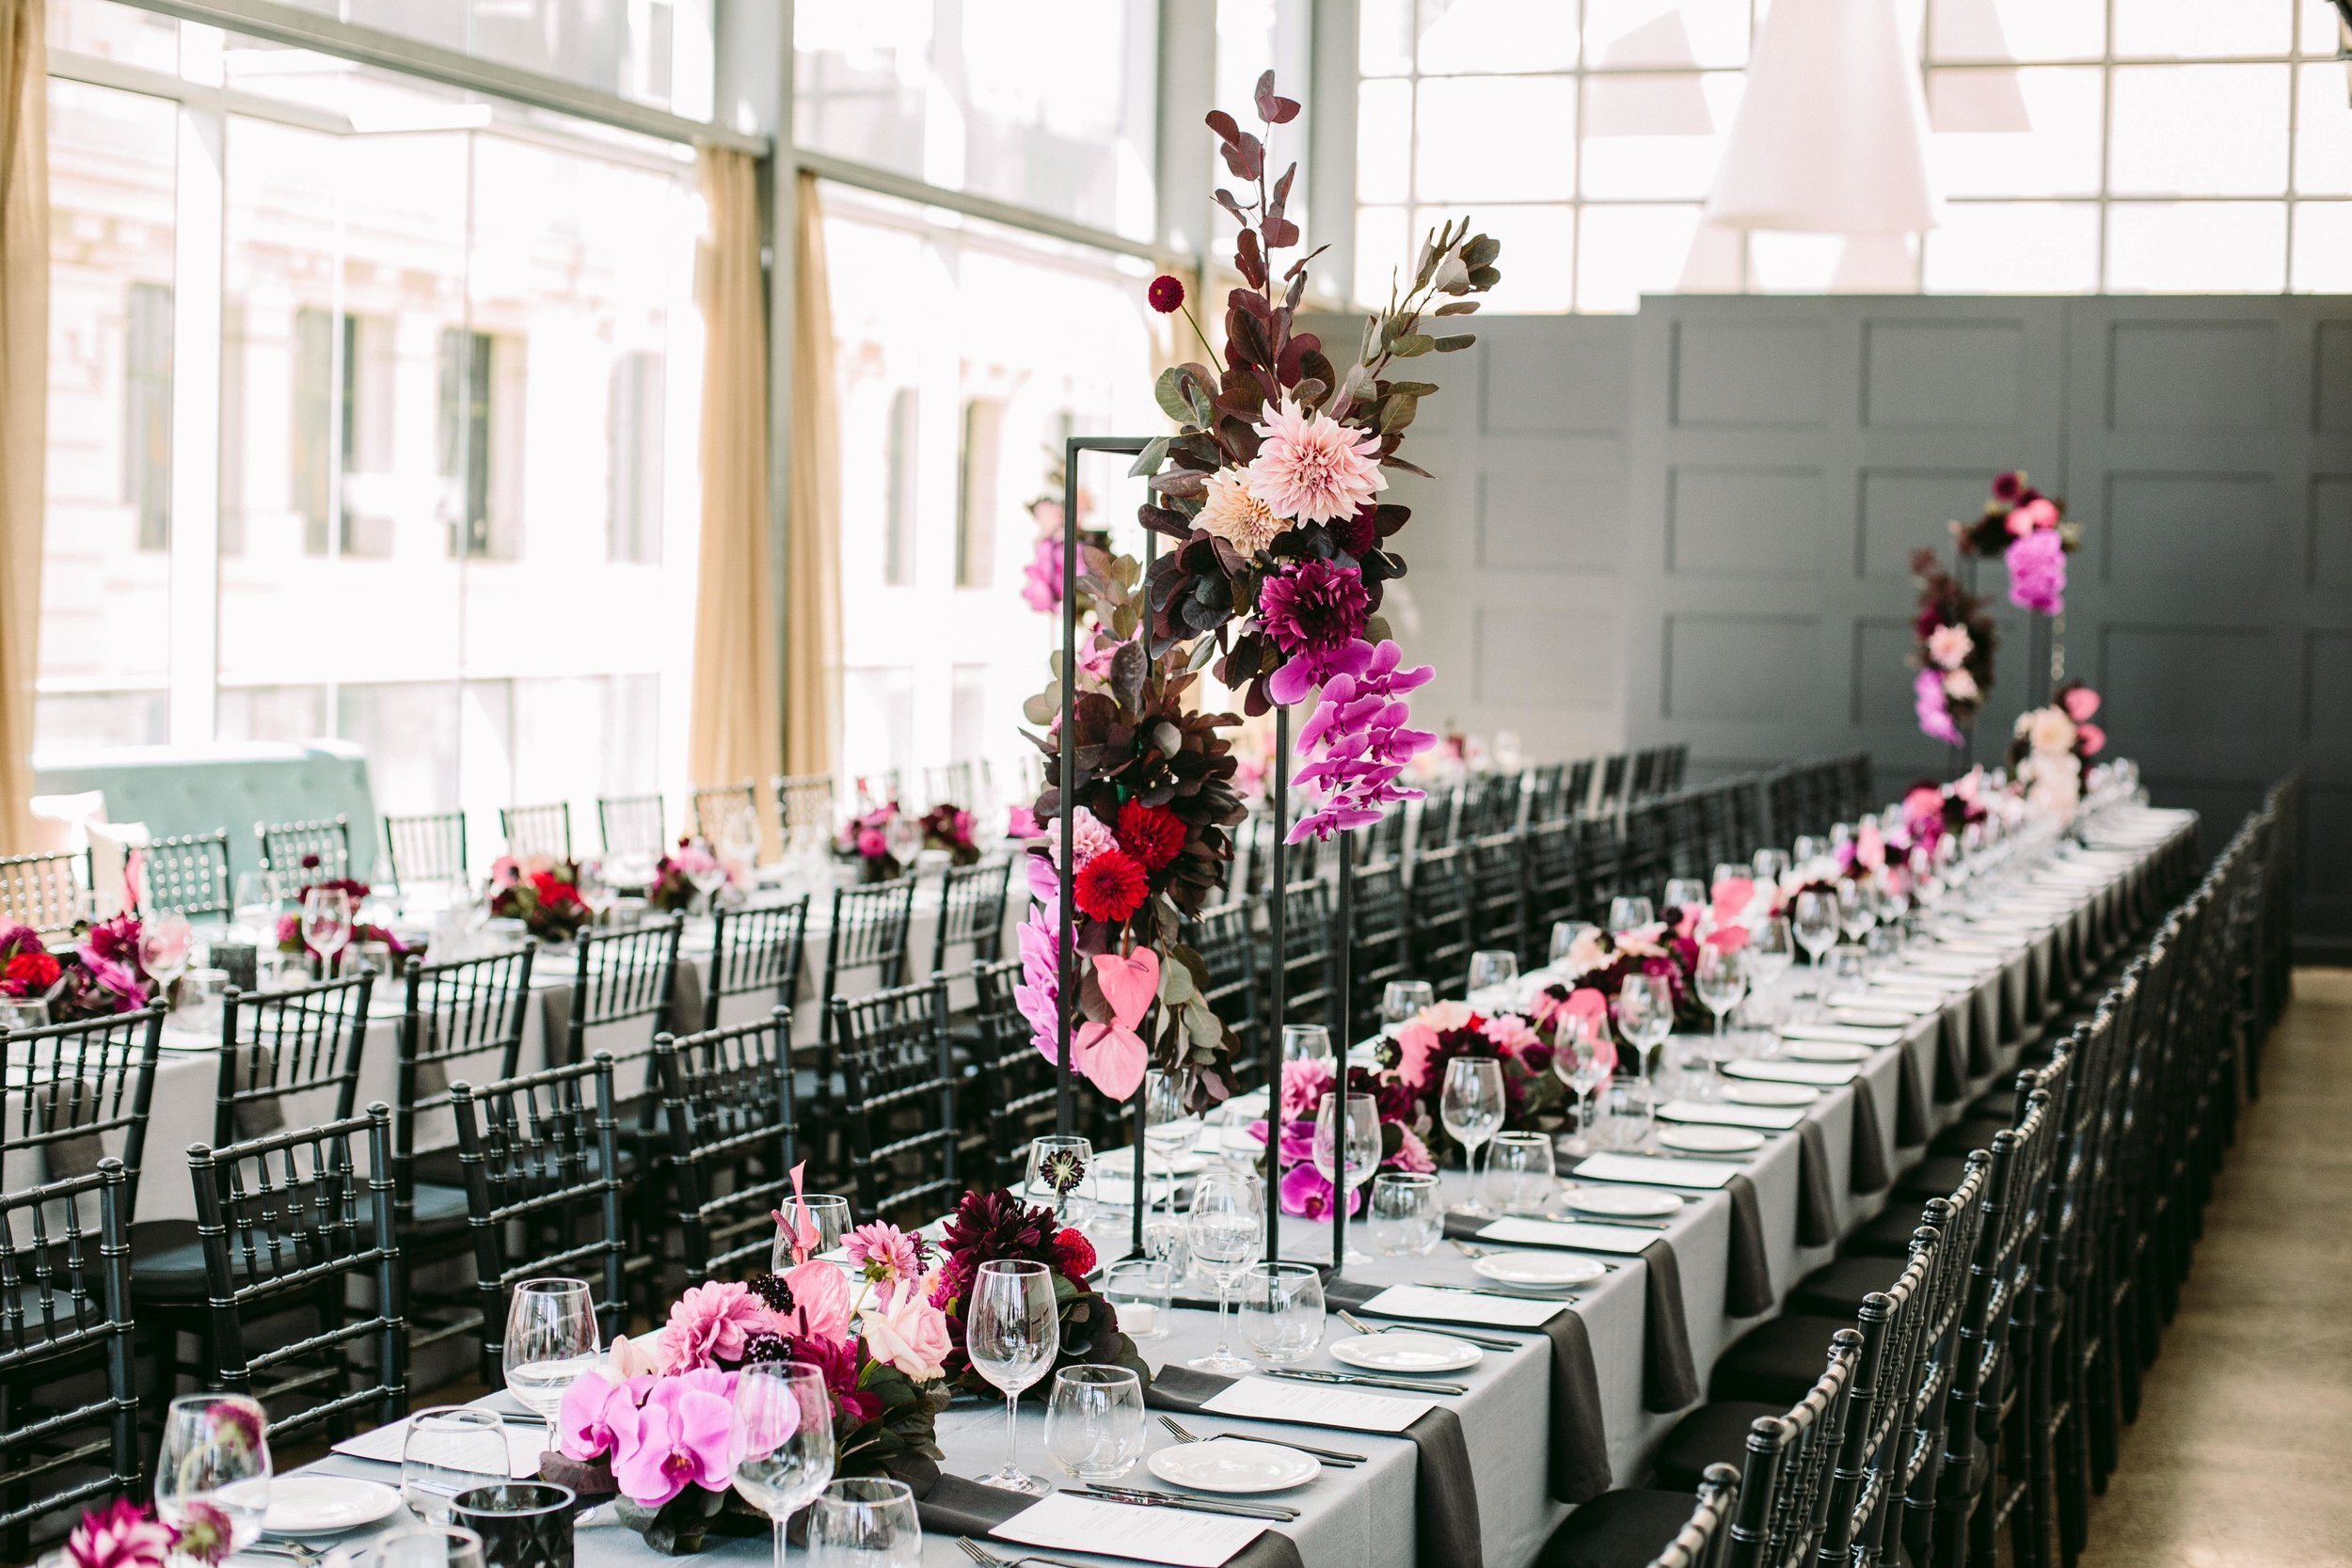 Alto Event Space Melboure Wedding Venue Table Setting With Flowers